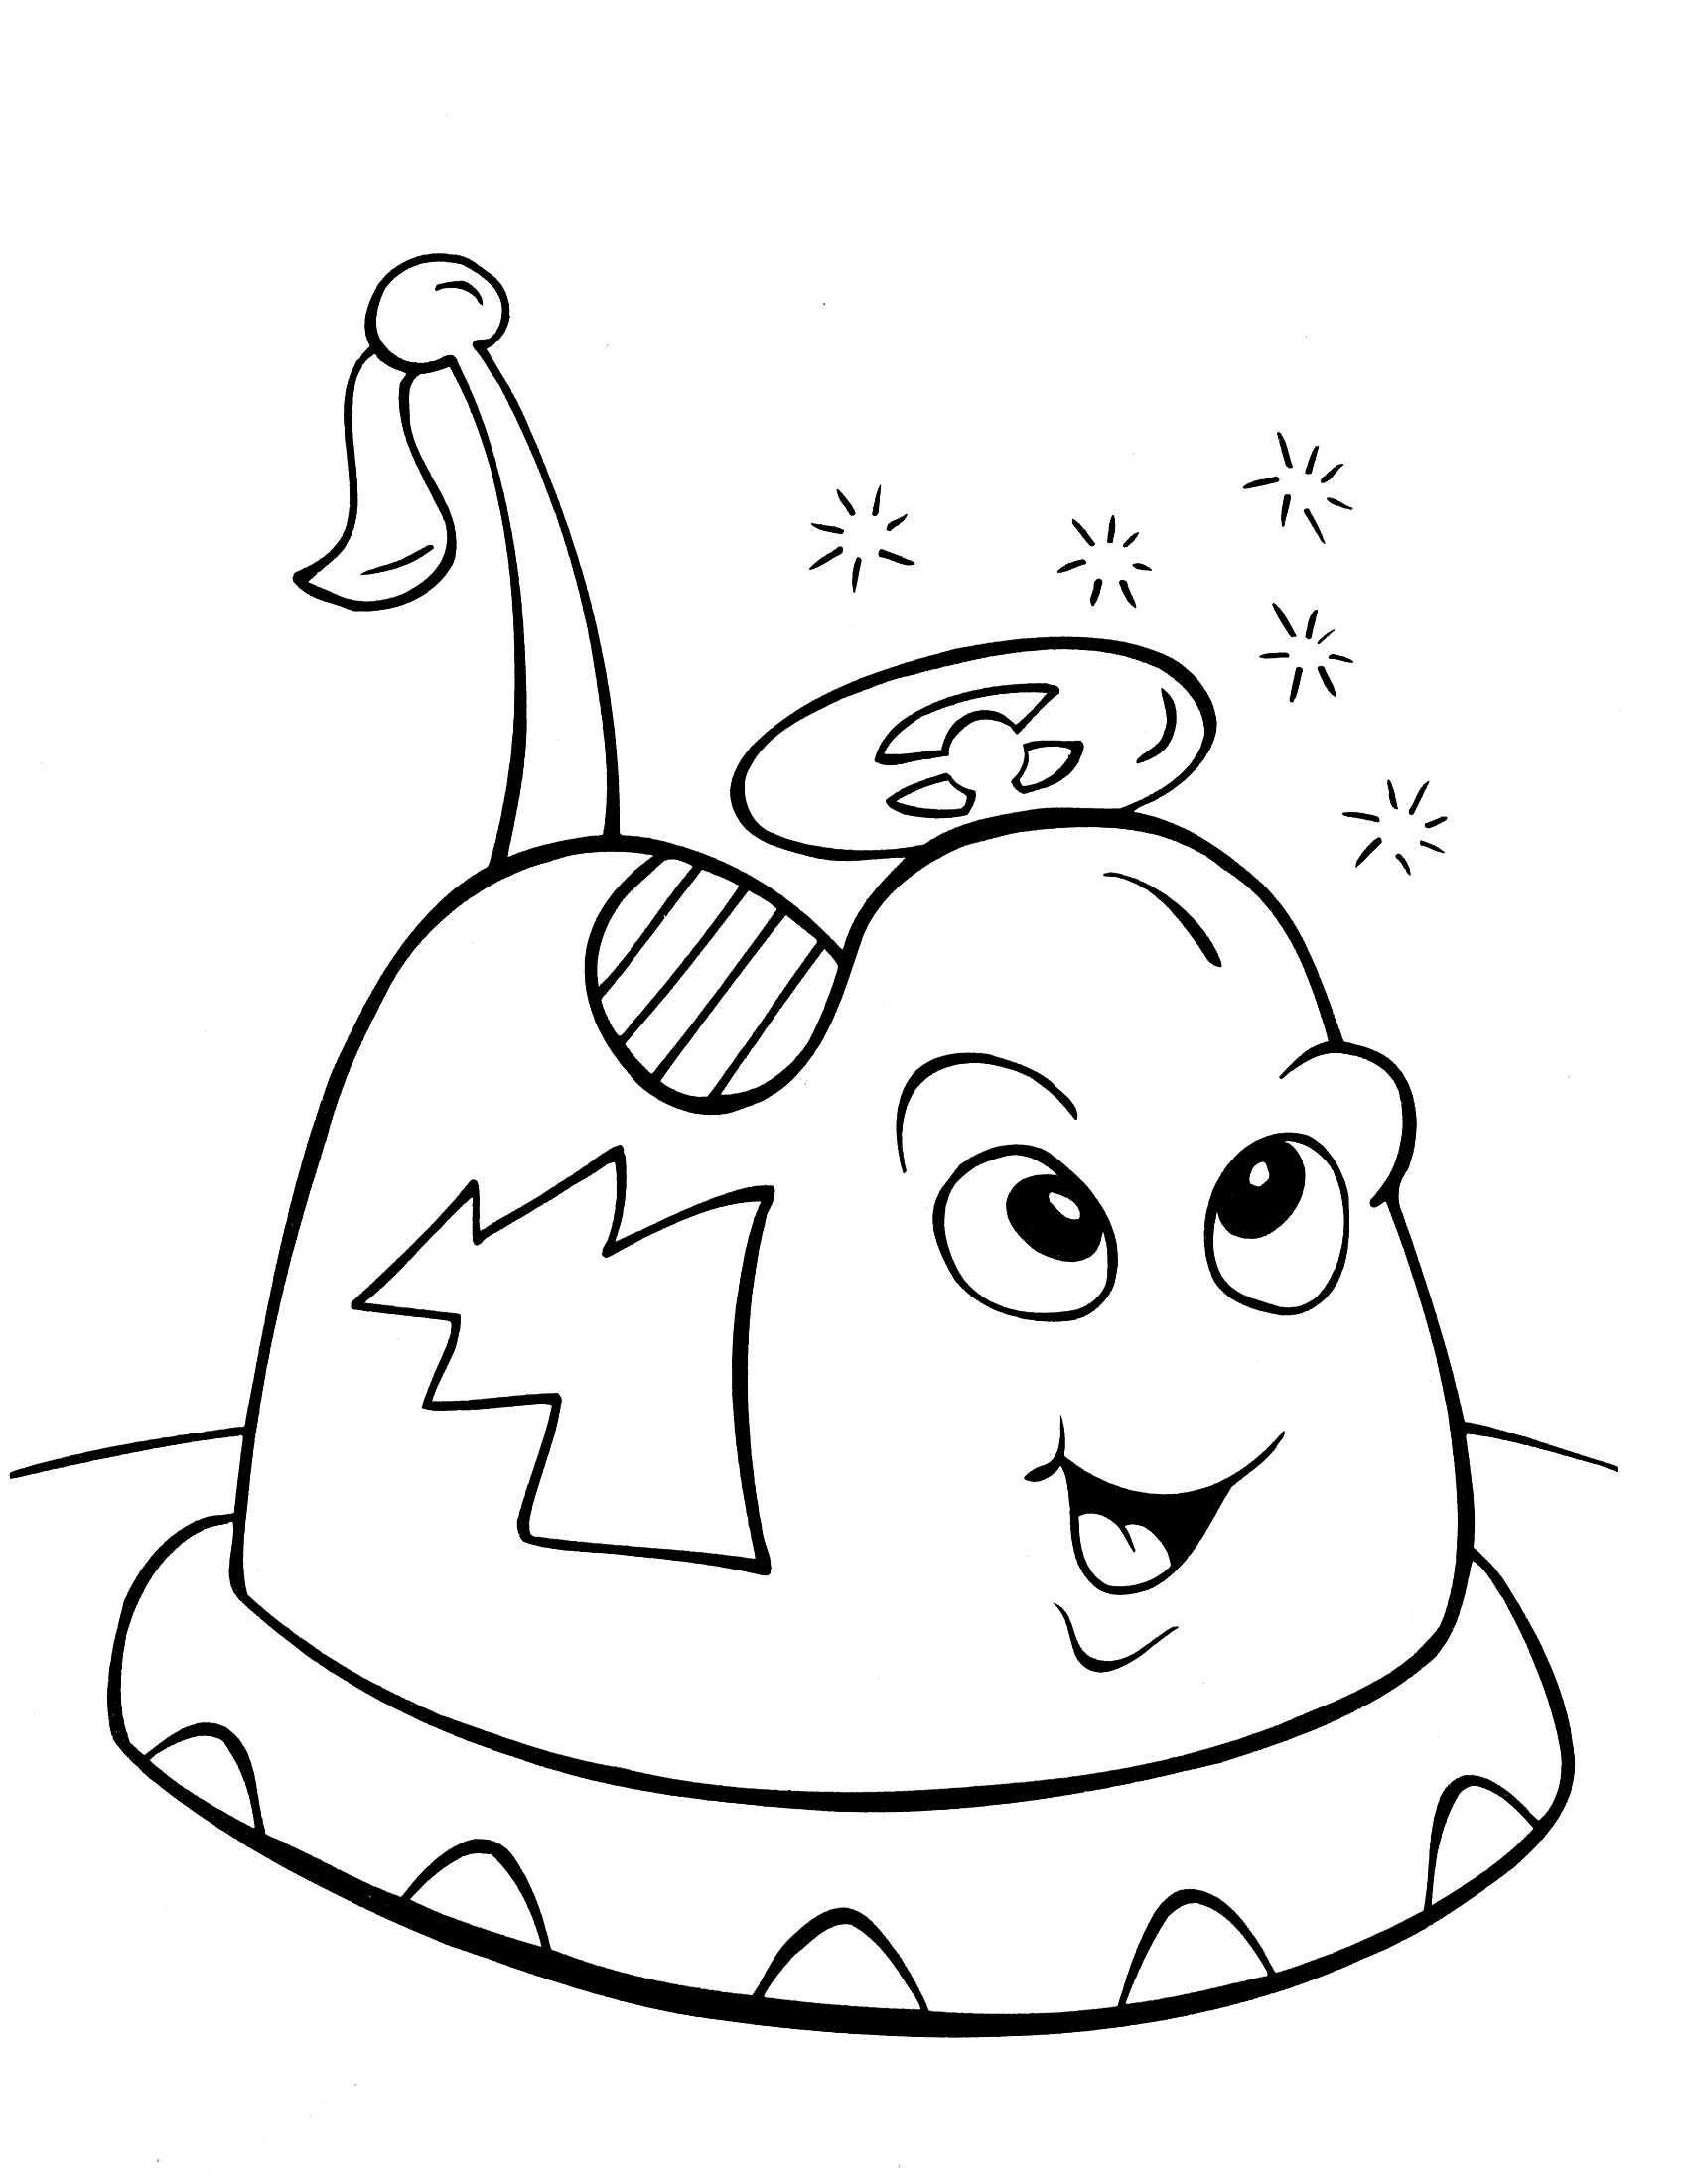 crayola free coloring pages 1